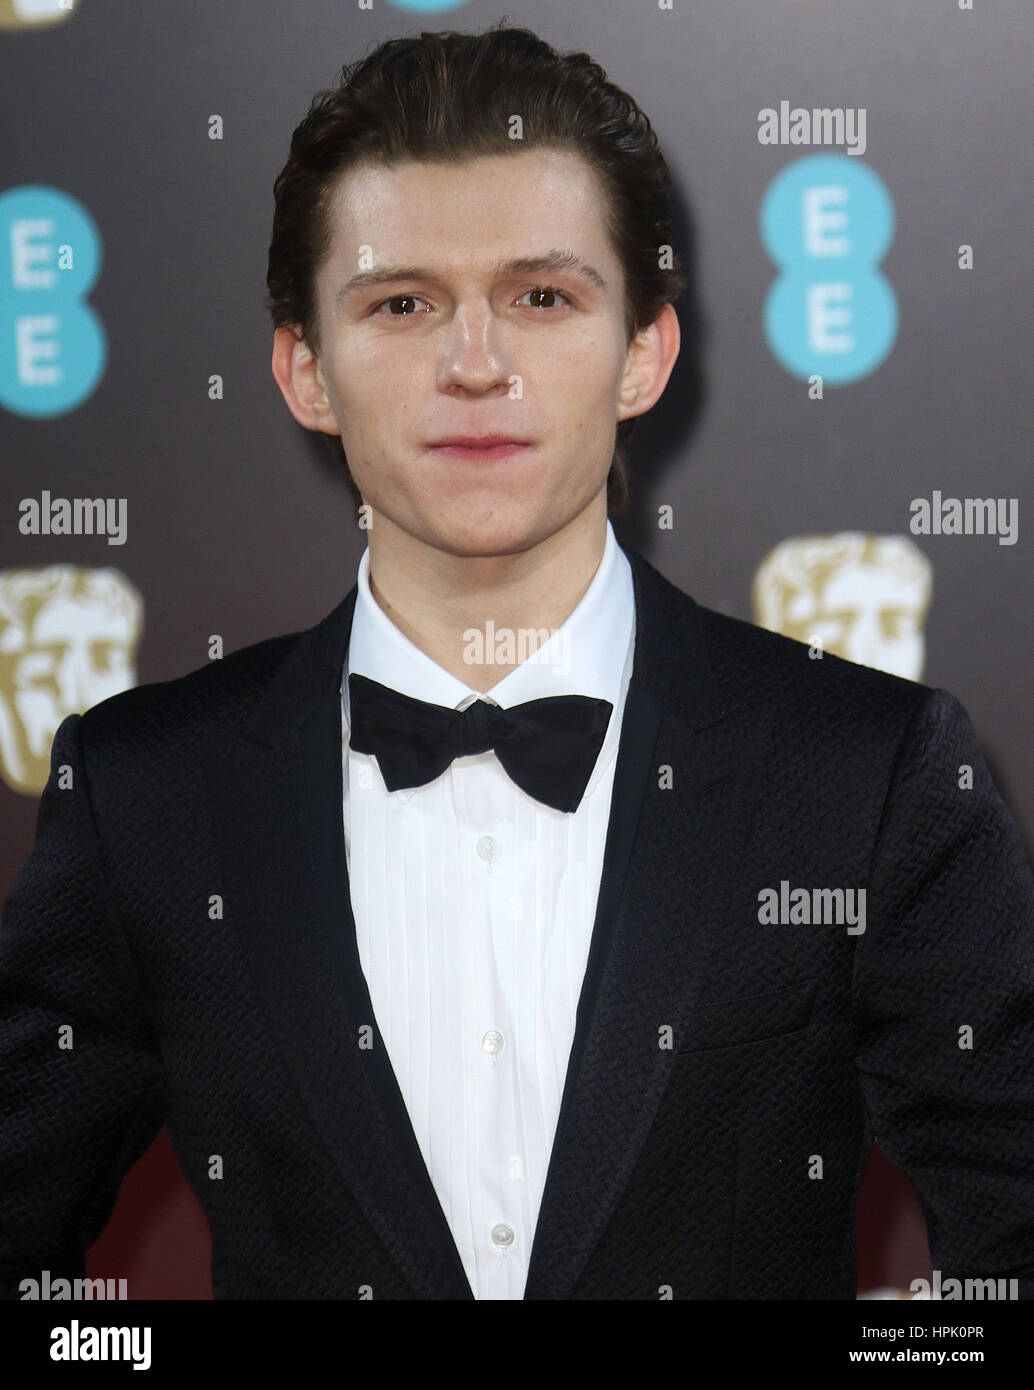 Feb 12, 2017  - Tom Holland attending EE British Academy Film Awards 2017 at Royal Opera House in London, England, - Stock Image